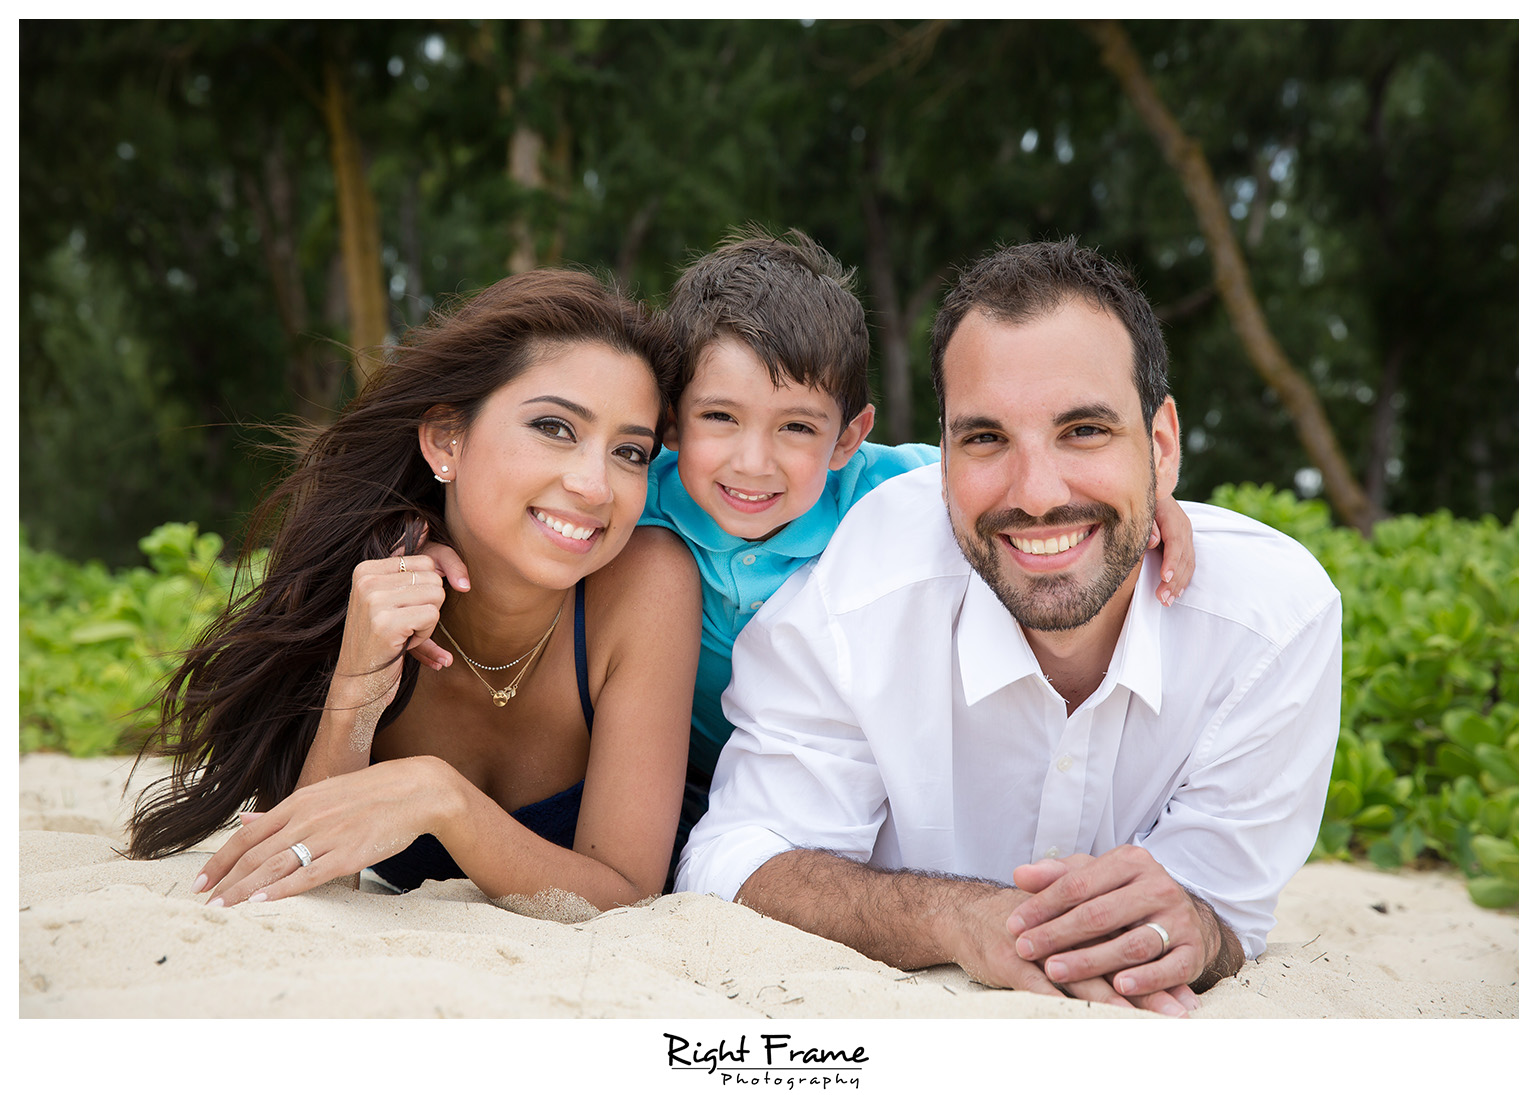 Oahu Hawaii Family Photography Oahu Family Photographer Waikiki, Honolulu, Ko Olina, Hawaii